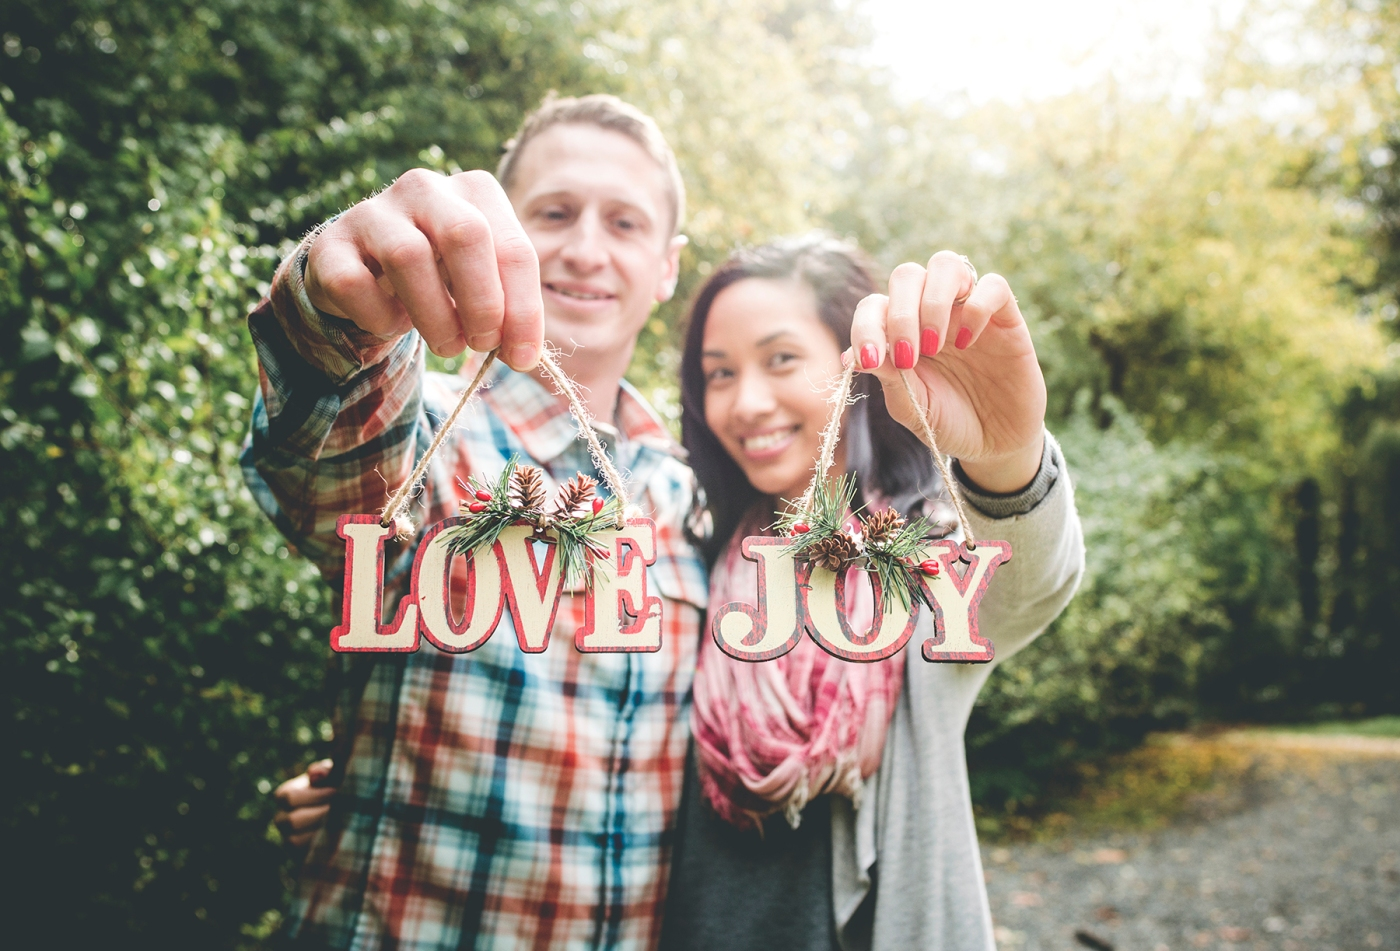 jane-speleers-photography-ju-bri-holiday-october-bellevue-botanical-garden-engagement-2016_dsc_5823